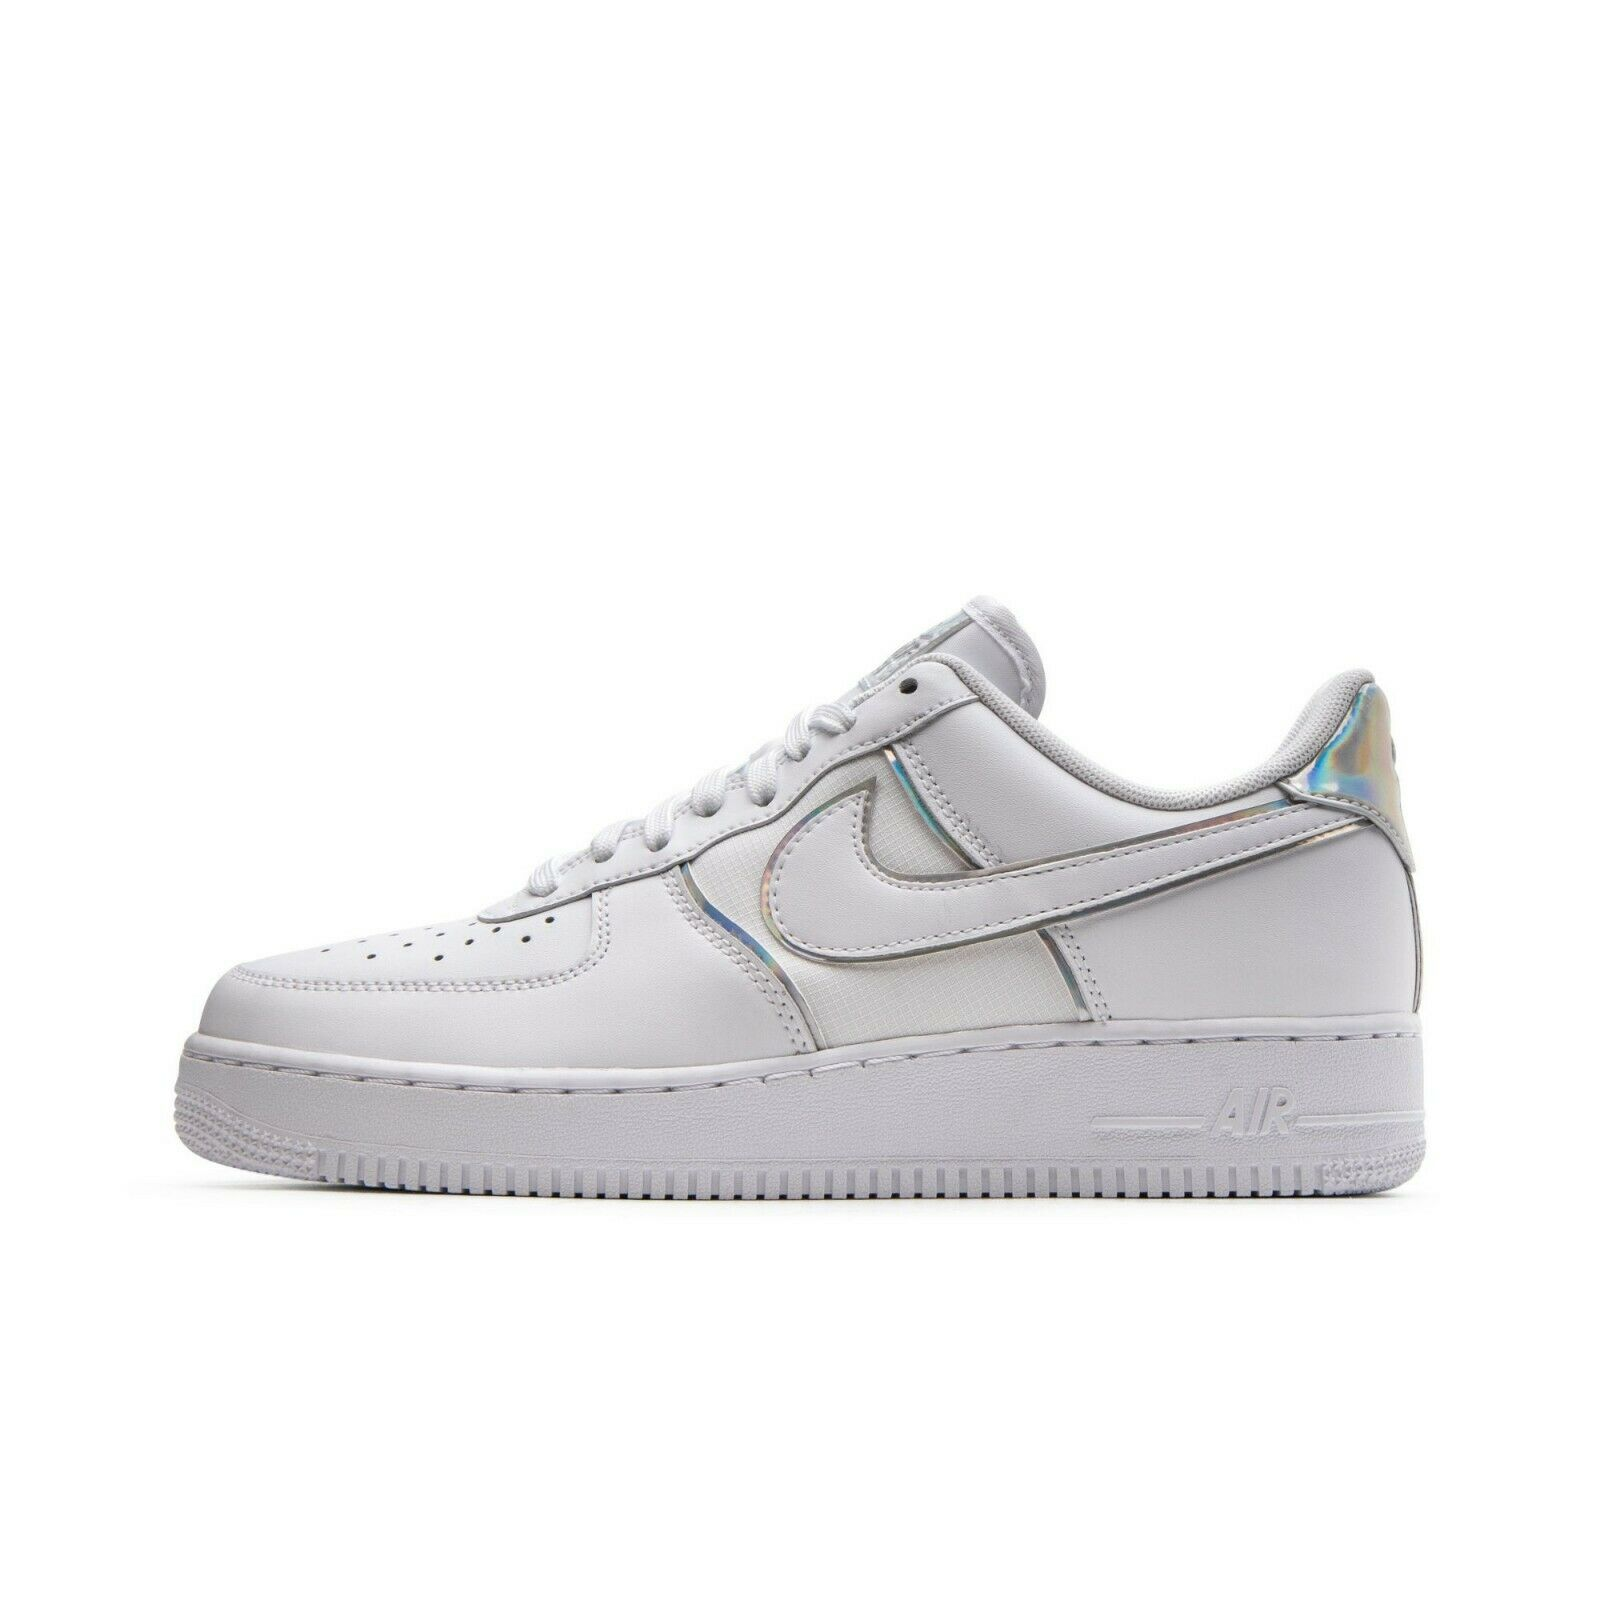 SCARPE SNEAKERS UOMO NIKE ORIGINALE AIR FORCE 1 '07 LV8 4 AT6147 PELLE P/E 2019